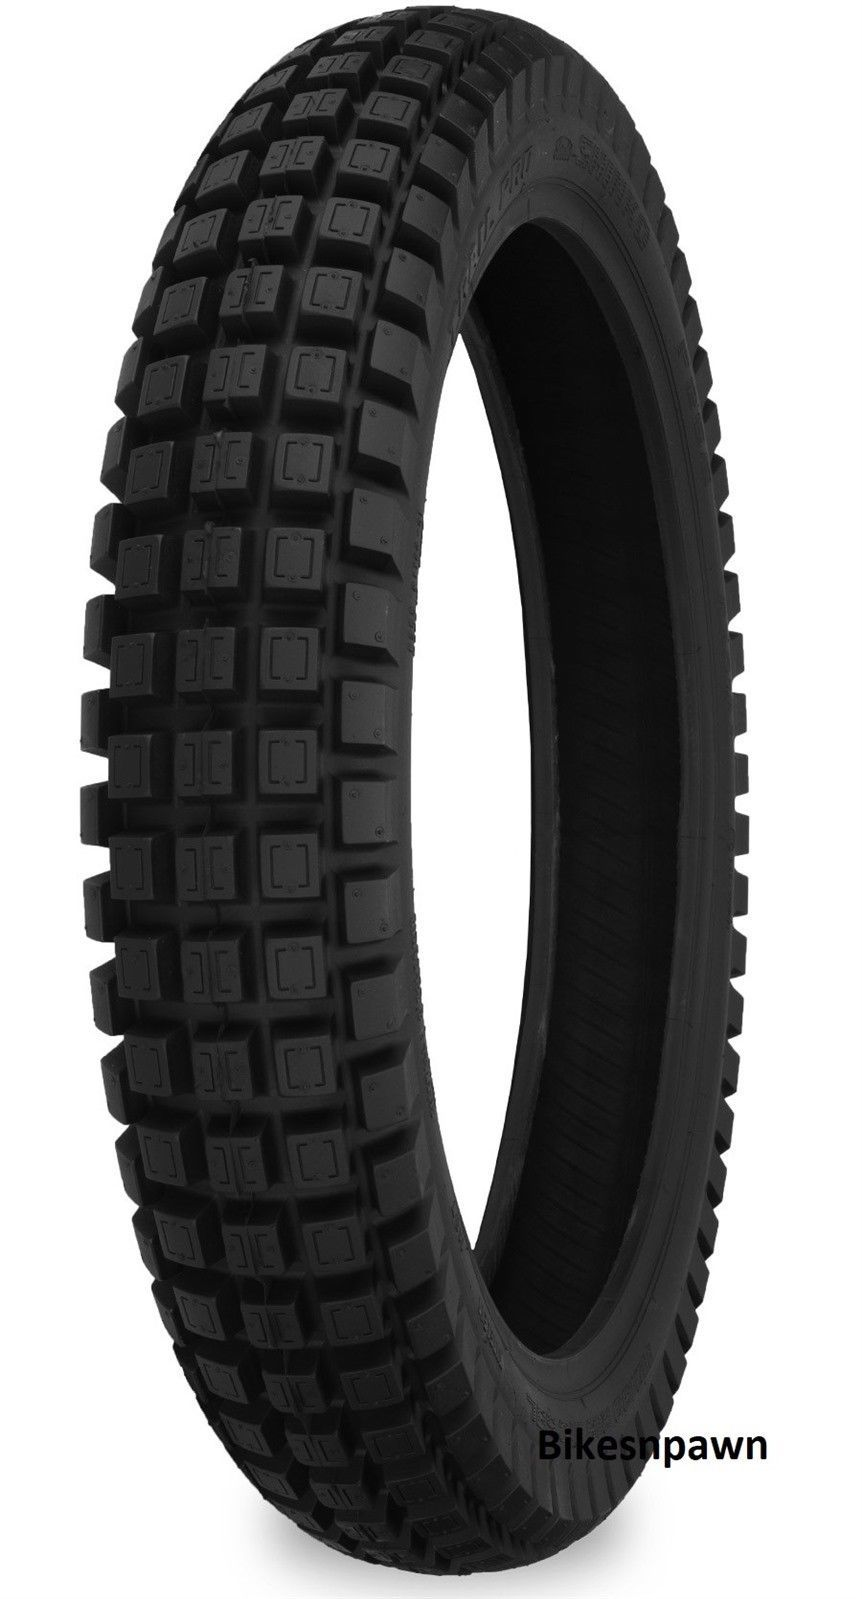 Shinko Trail Pro 255 110/80R-19 Rear Trials Soft Radial DOT Motorcycle Tire L 59